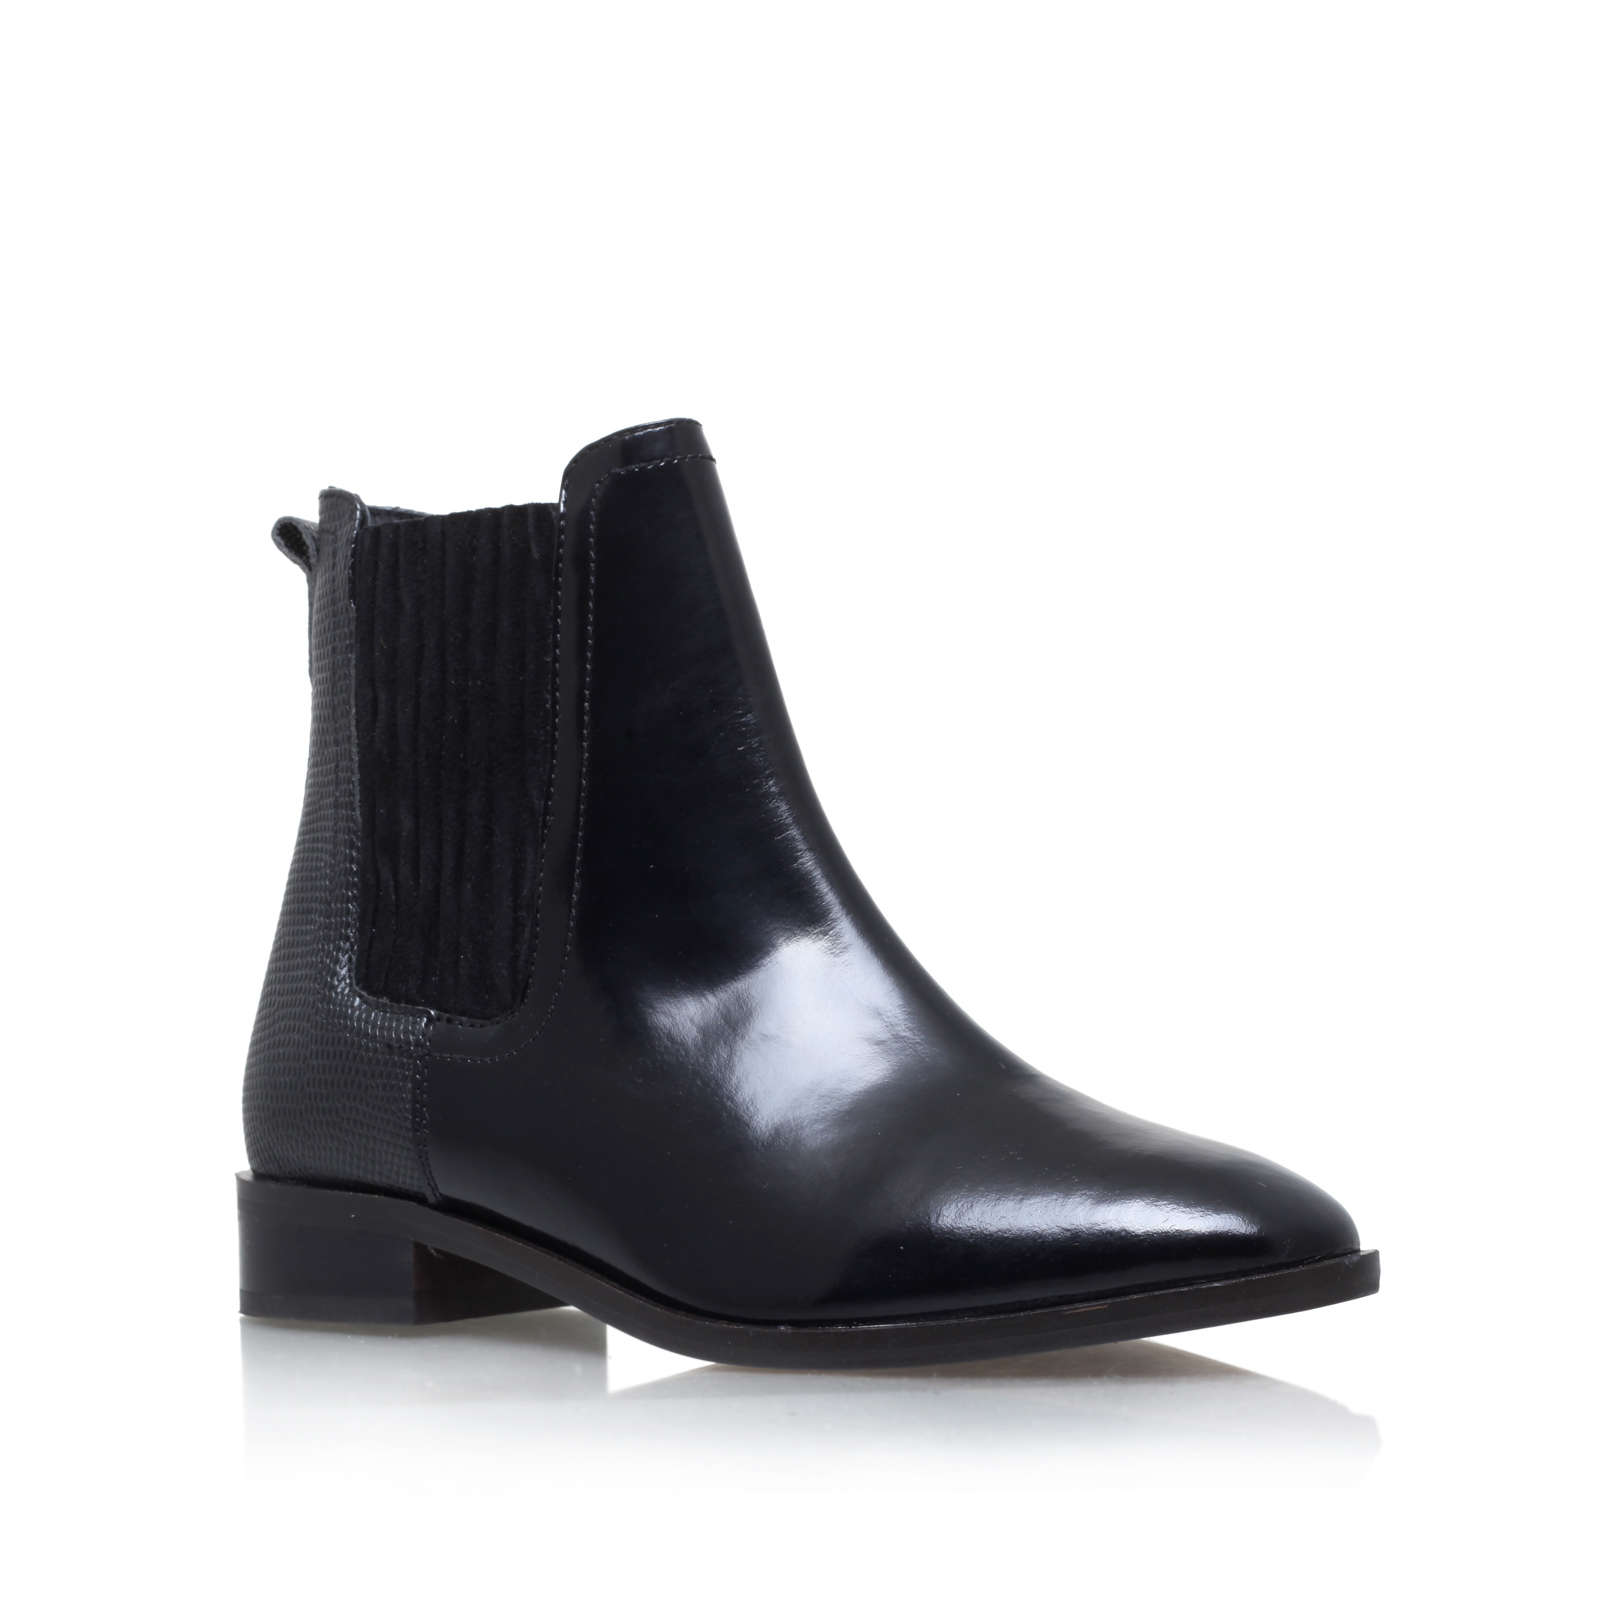 staple kg kurt geiger black leather flat ankle boots by kg